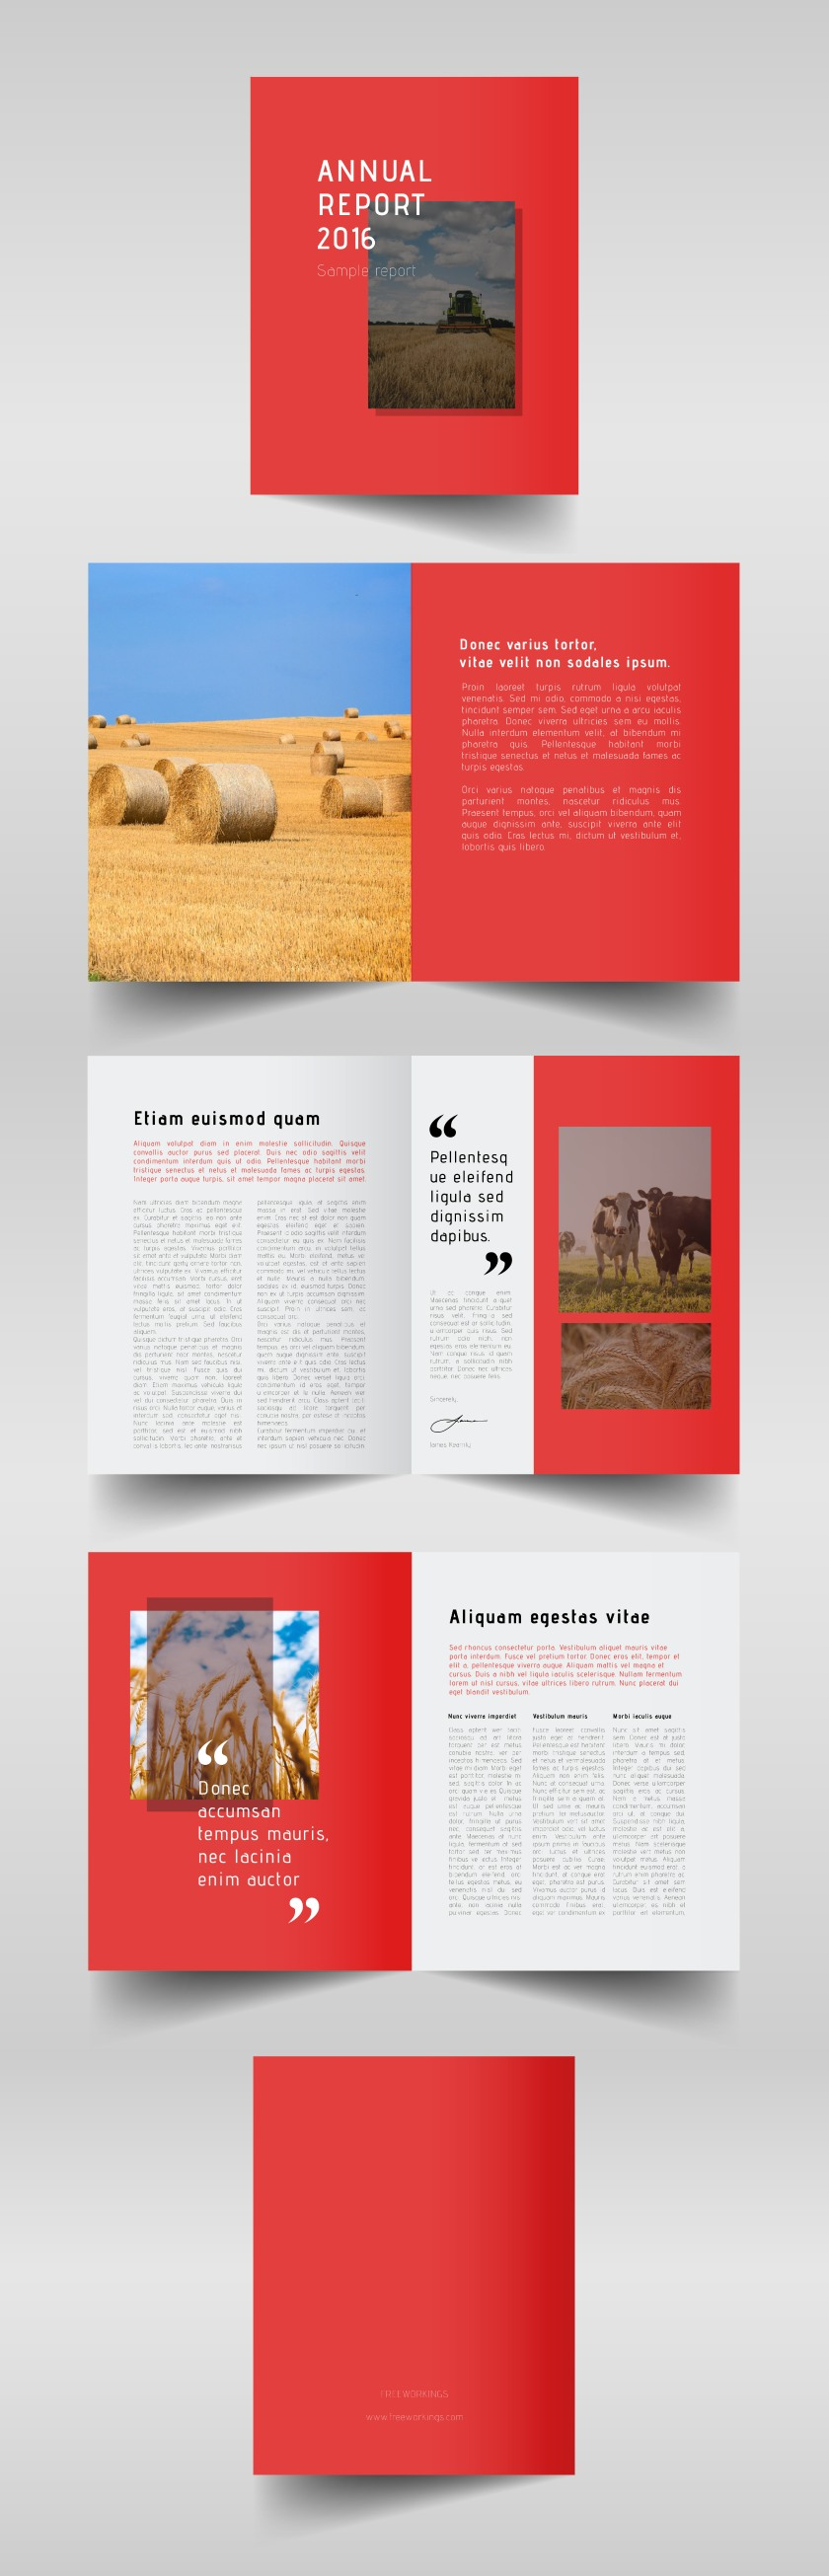 export_farmersred-01